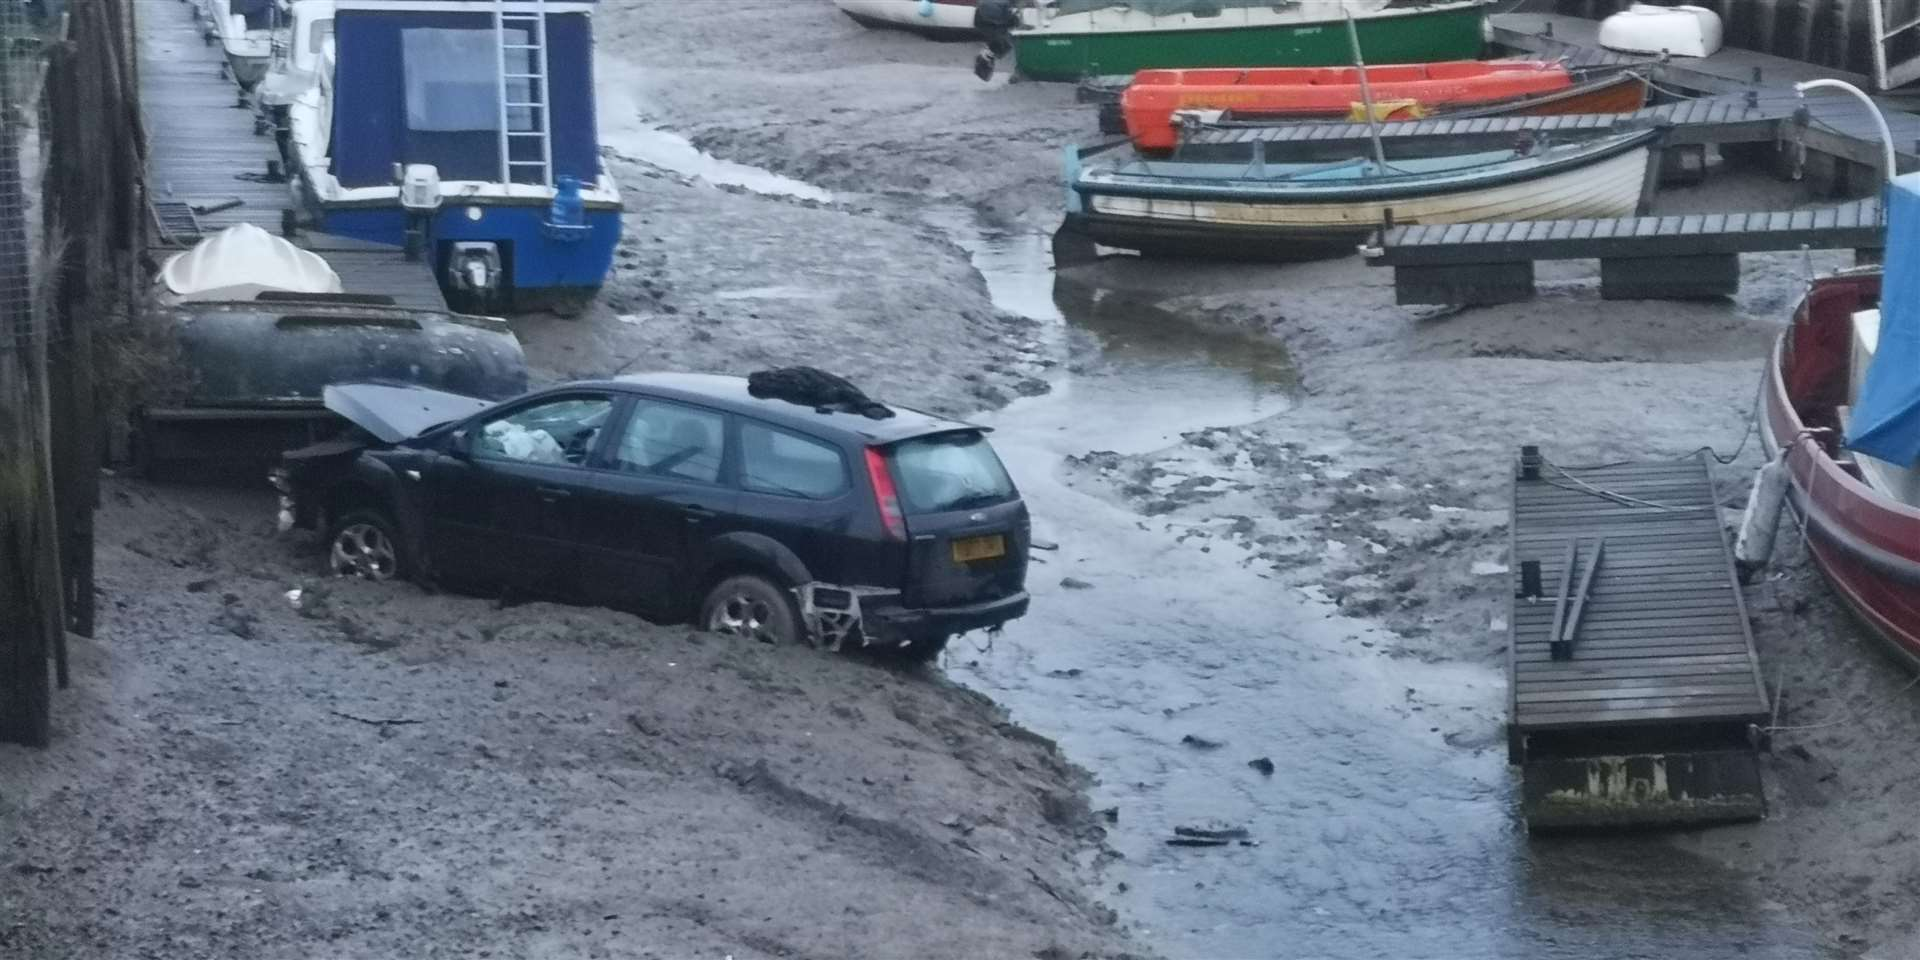 Car crashes into Oare creek by Youngs Boat Yard off The Street Oare (7057587)